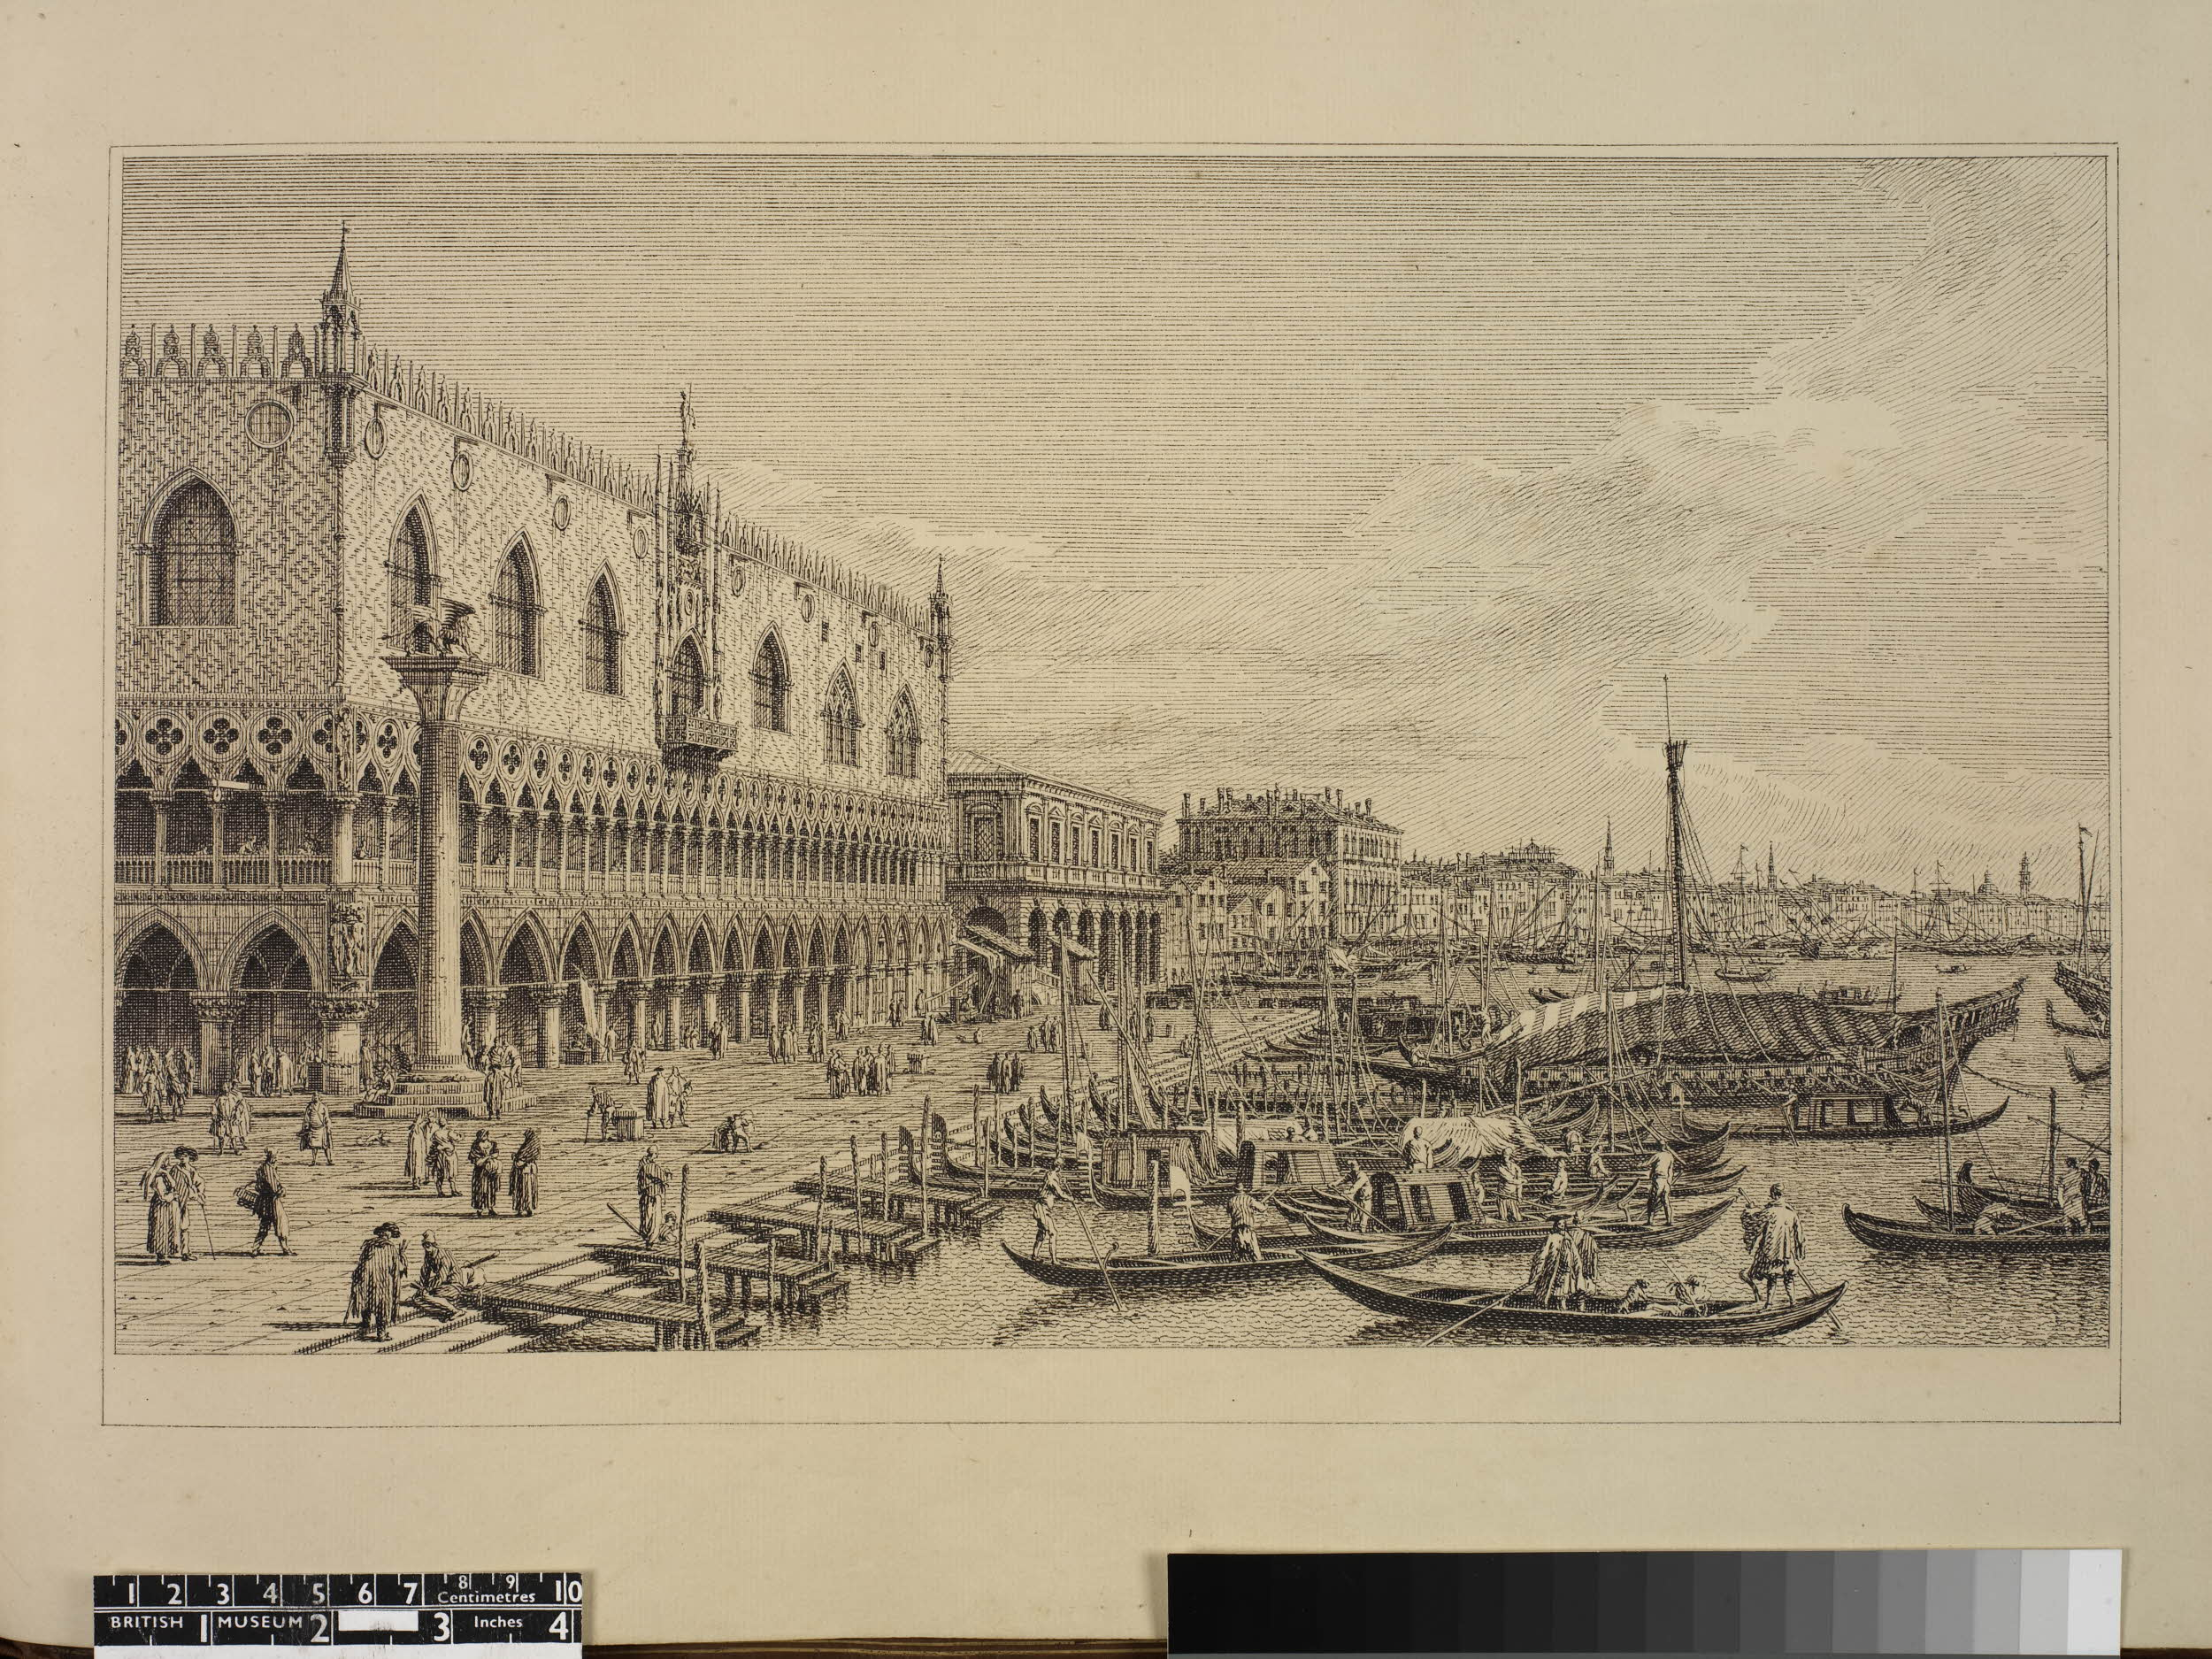 View from the Piazza San Marco to the Schiavoni after Antonio Canaletto